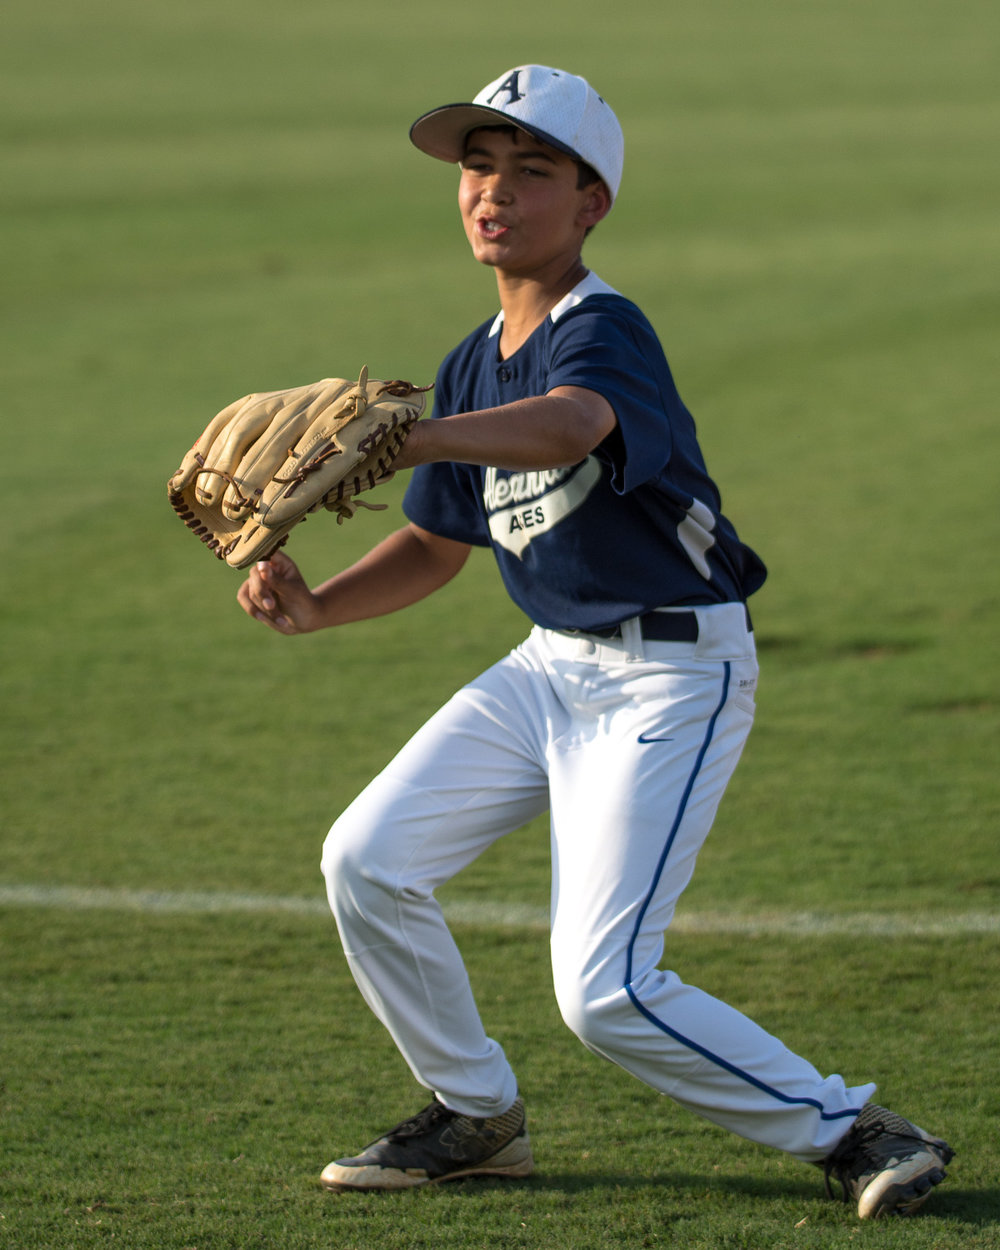 20160707 - DC Grays vs Aces-5647.jpg